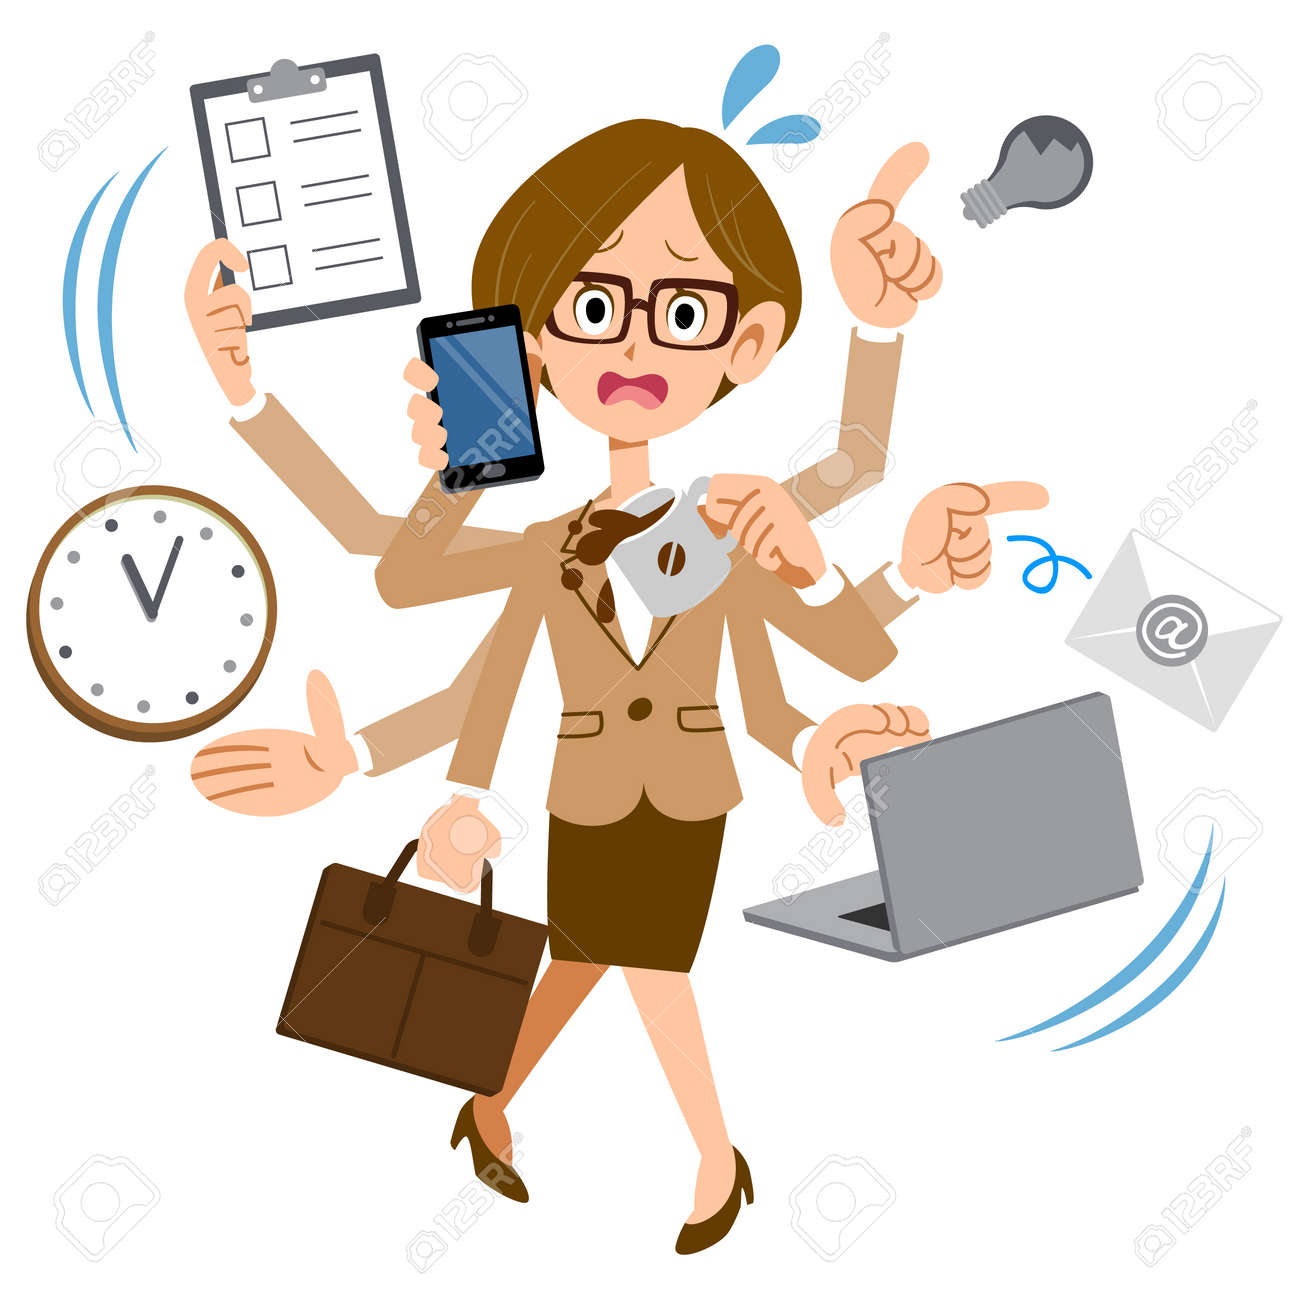 7 042 busy woman cliparts stock vector and royalty free busy woman rh 123rf com